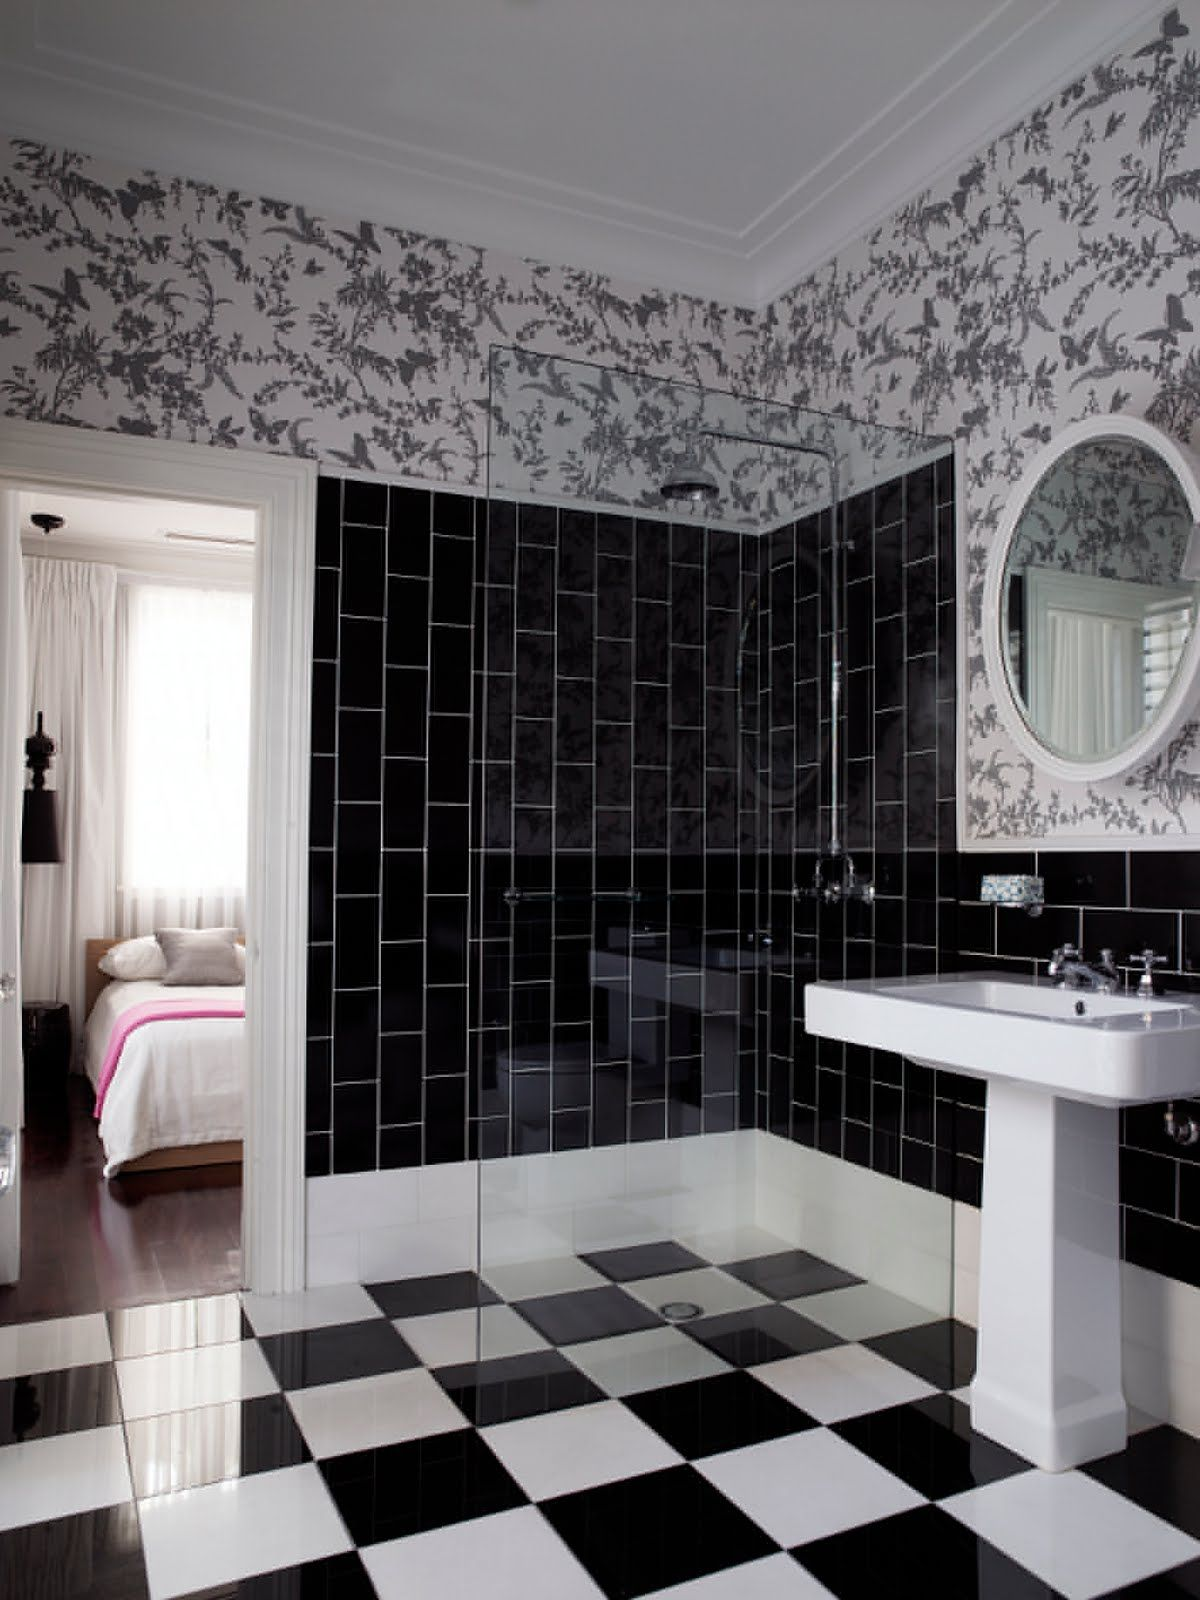 nice-black-and-white-floral-bathroom-tiles-design